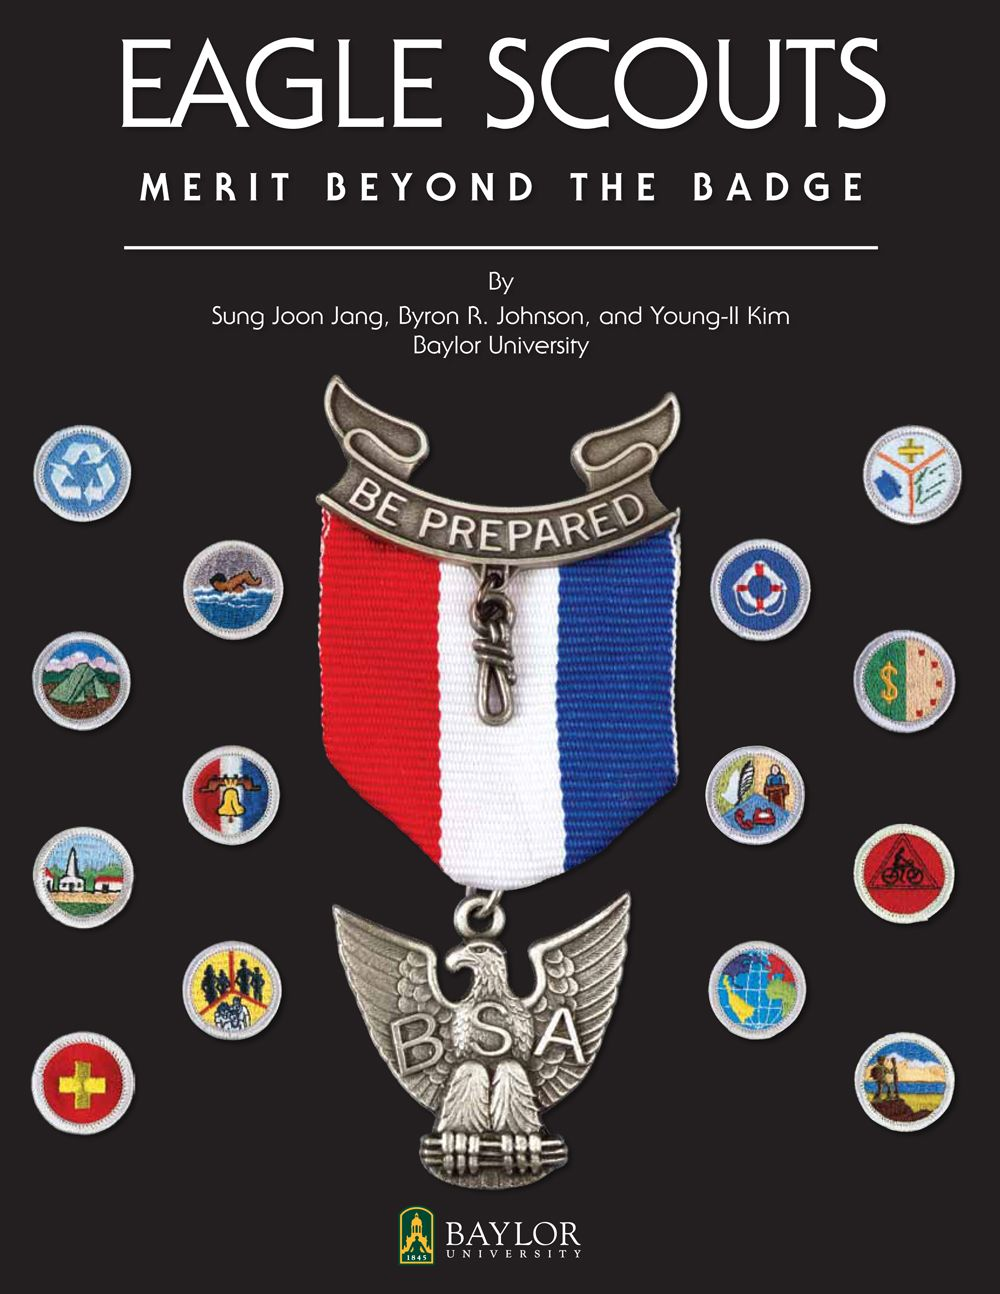 Meaning of the Boy Scout emblem | Eagle Scout | Pinterest | Eagle ...